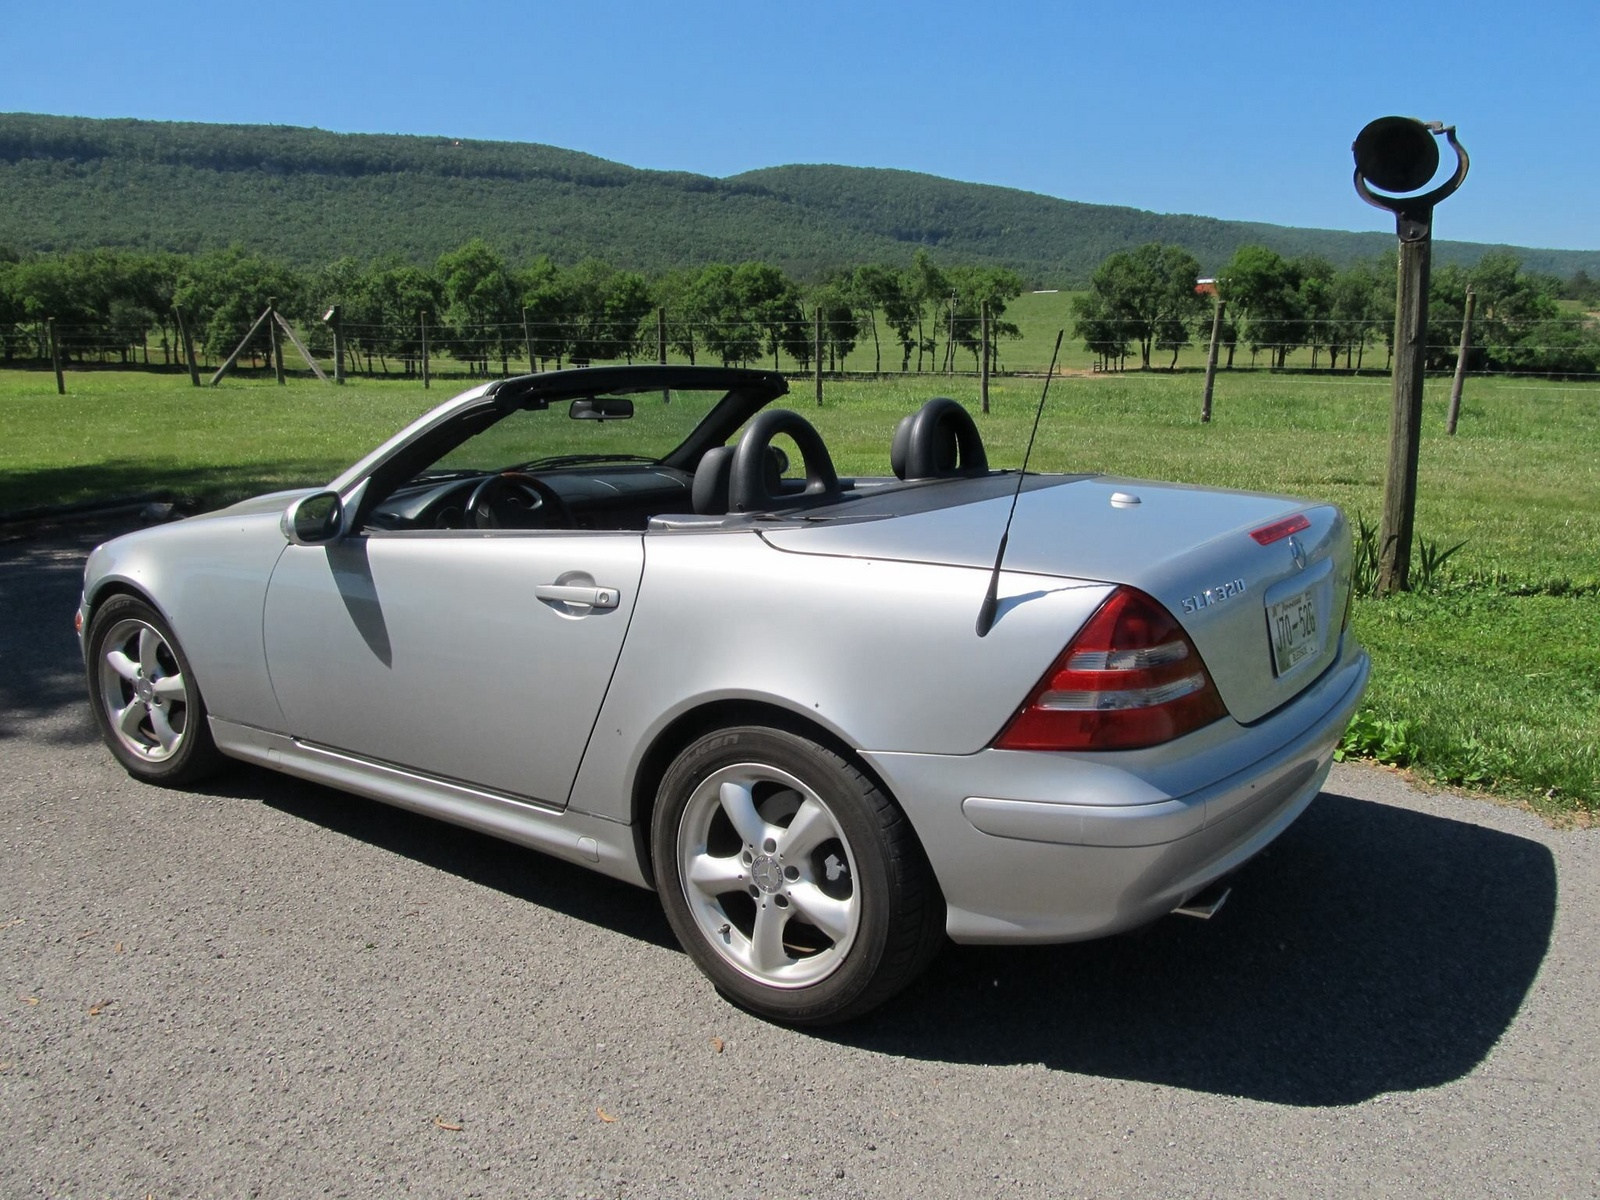 2002 mercedes benz slk class pictures cargurus. Black Bedroom Furniture Sets. Home Design Ideas